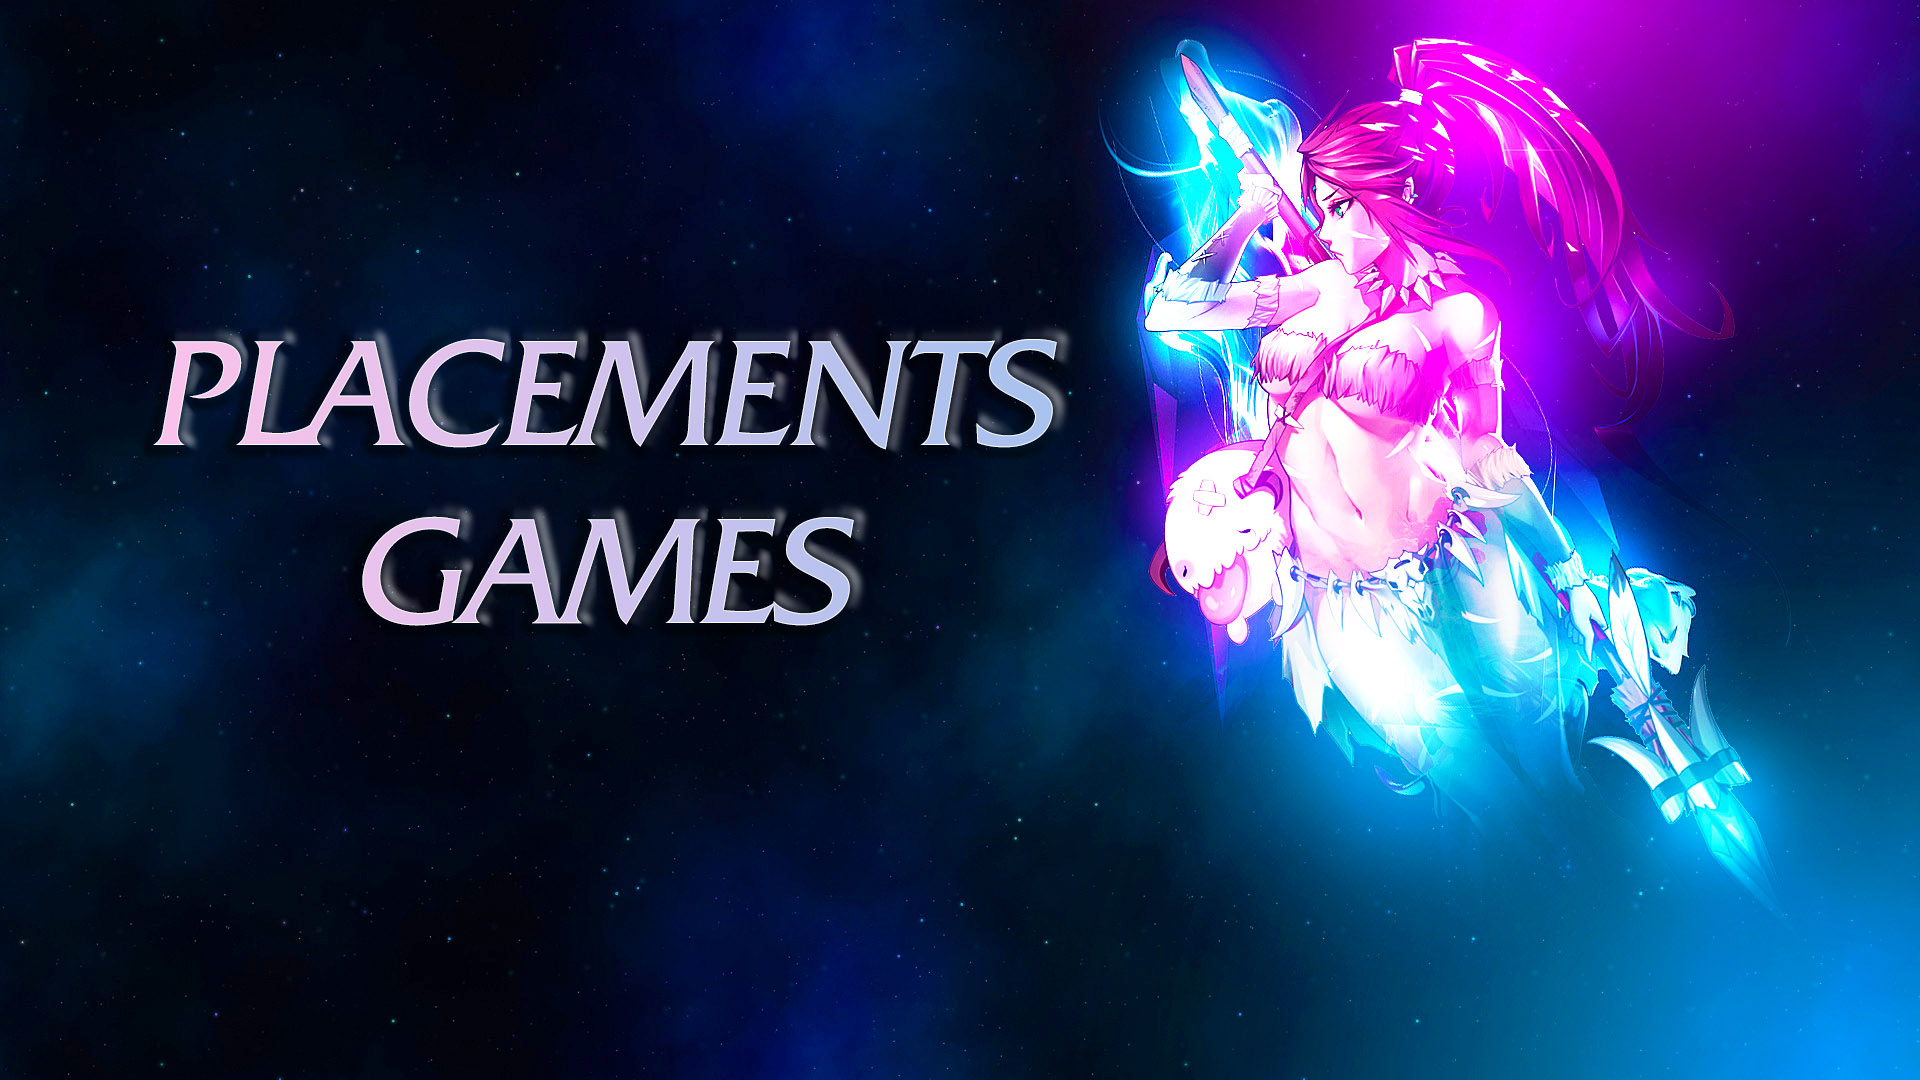 PLACEMENT GAMES (PLATINUM) ThisIsHarley - e2p.com